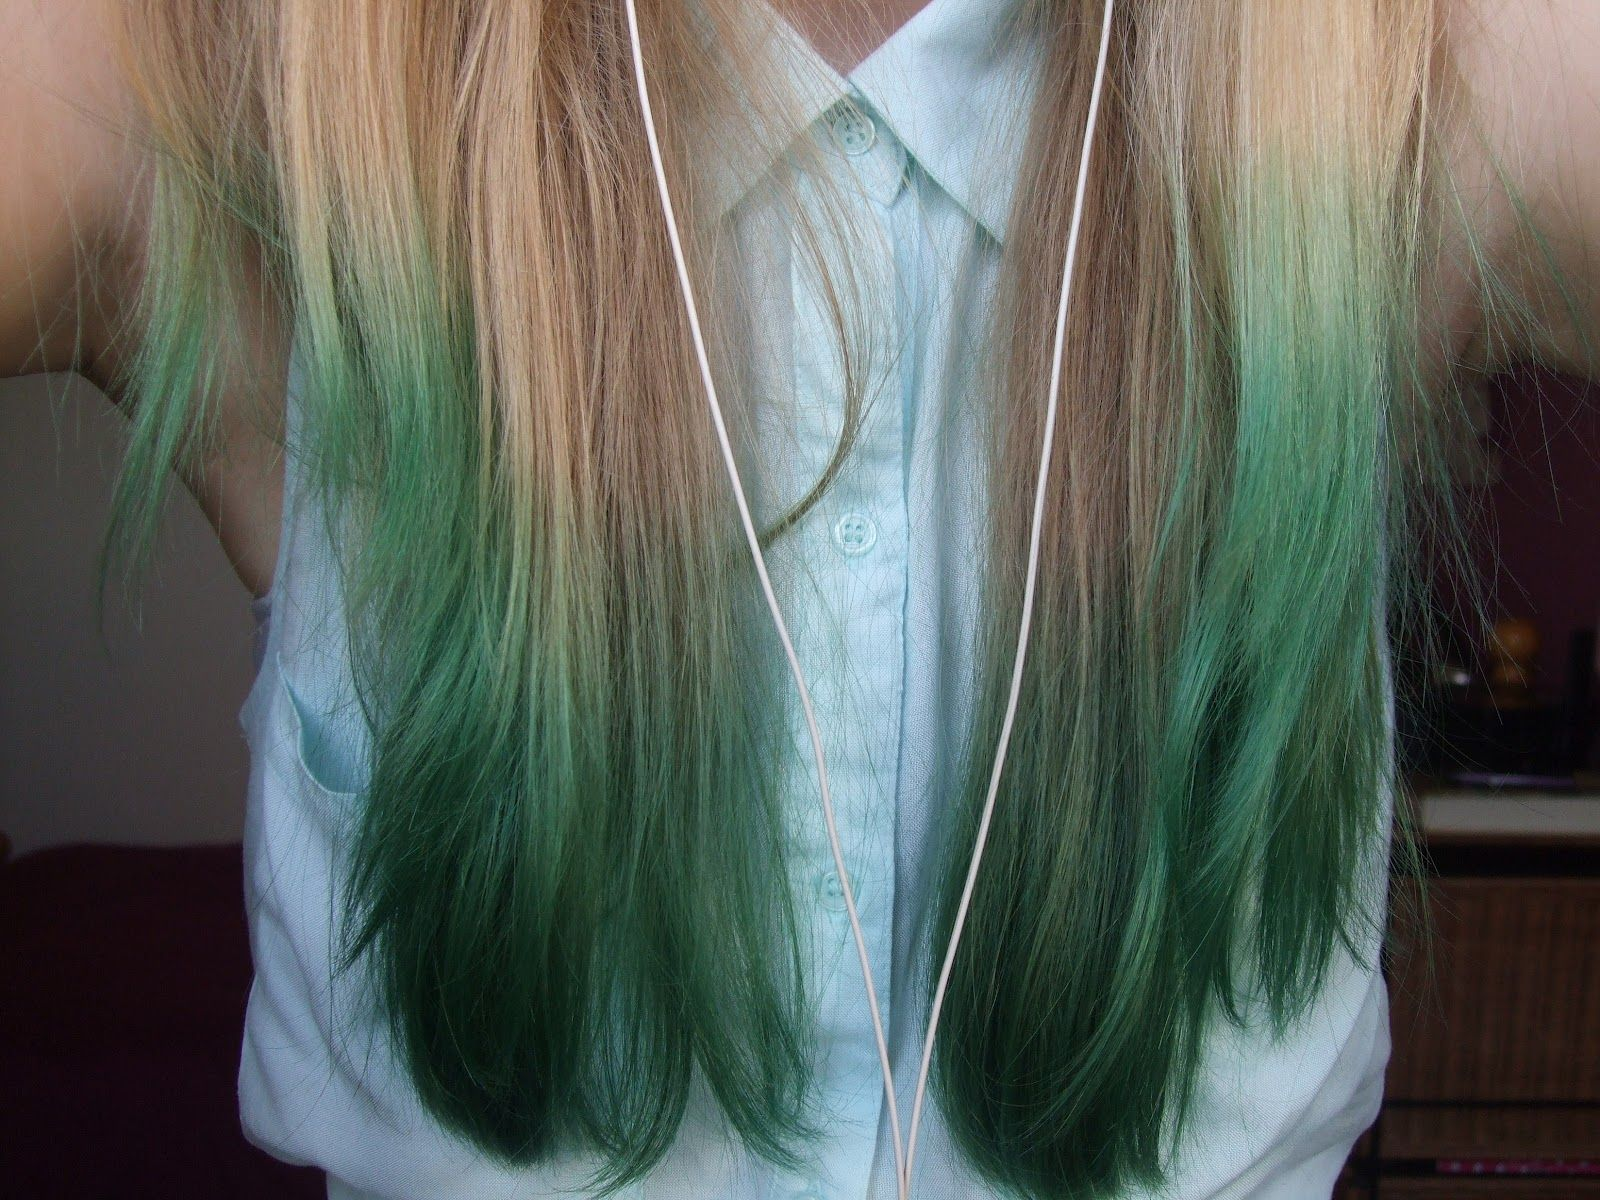 Green Dip Dyed Hair Dip Dye Hair Brown Hair Dip Dyed Blonde